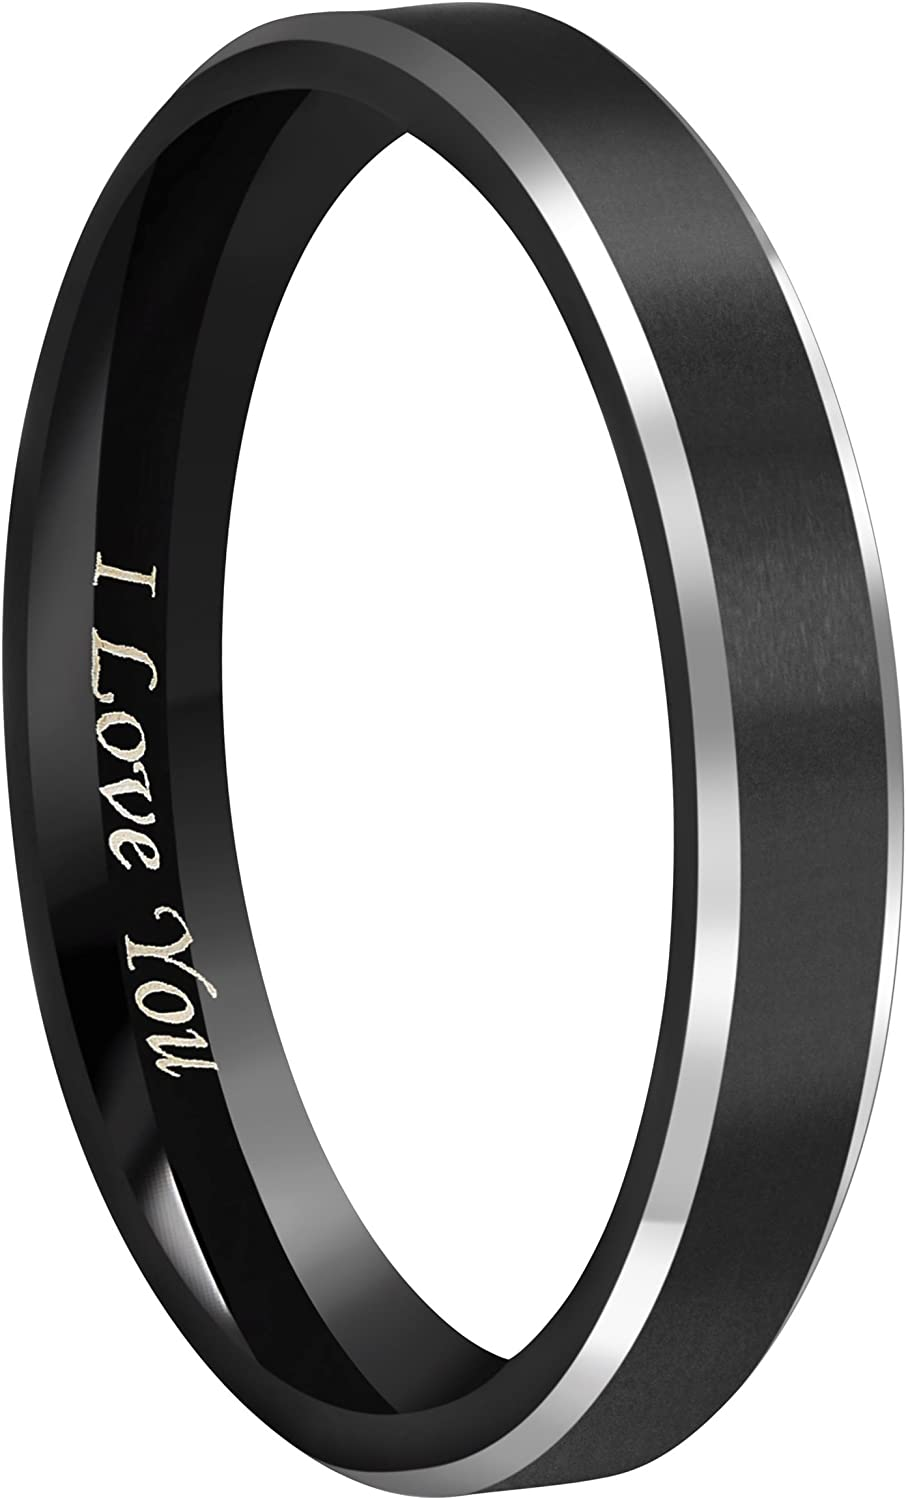 """Crownal 4mm 6mm 8mm Black Tungsten Couple Wedding Bands Rings Men Women Polished Beveled Edges Matte Brushed Finish Engraved""""I Love You"""" Size 3.5 To 17"""